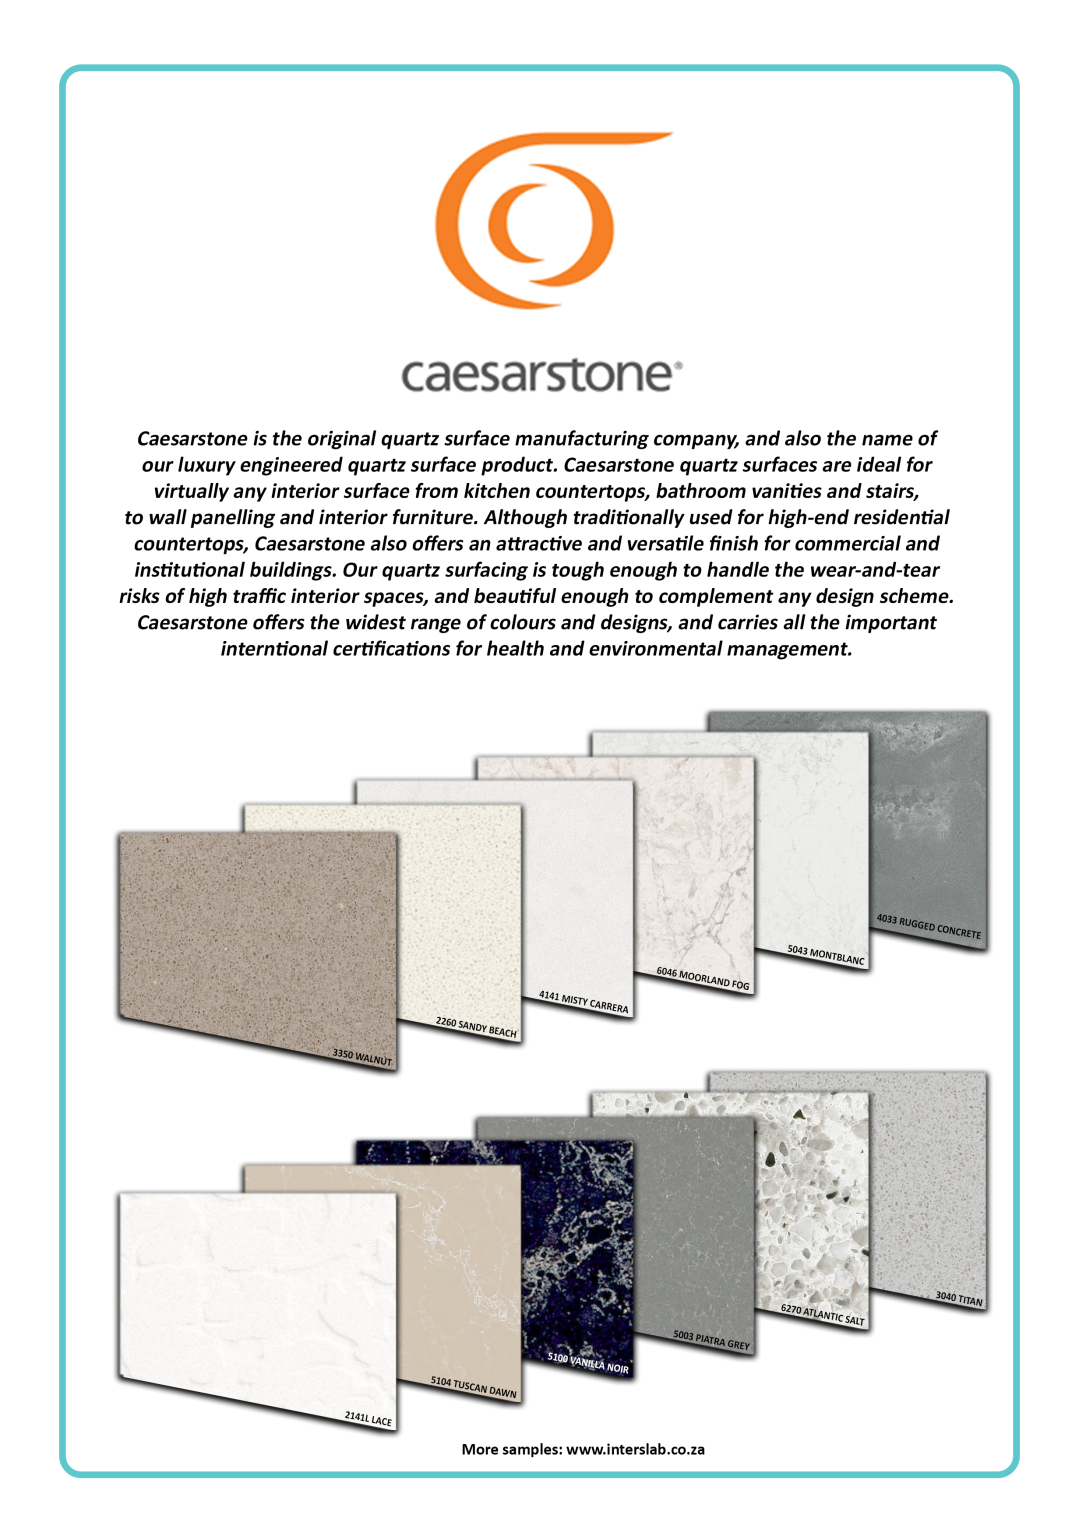 caesarstone-samples